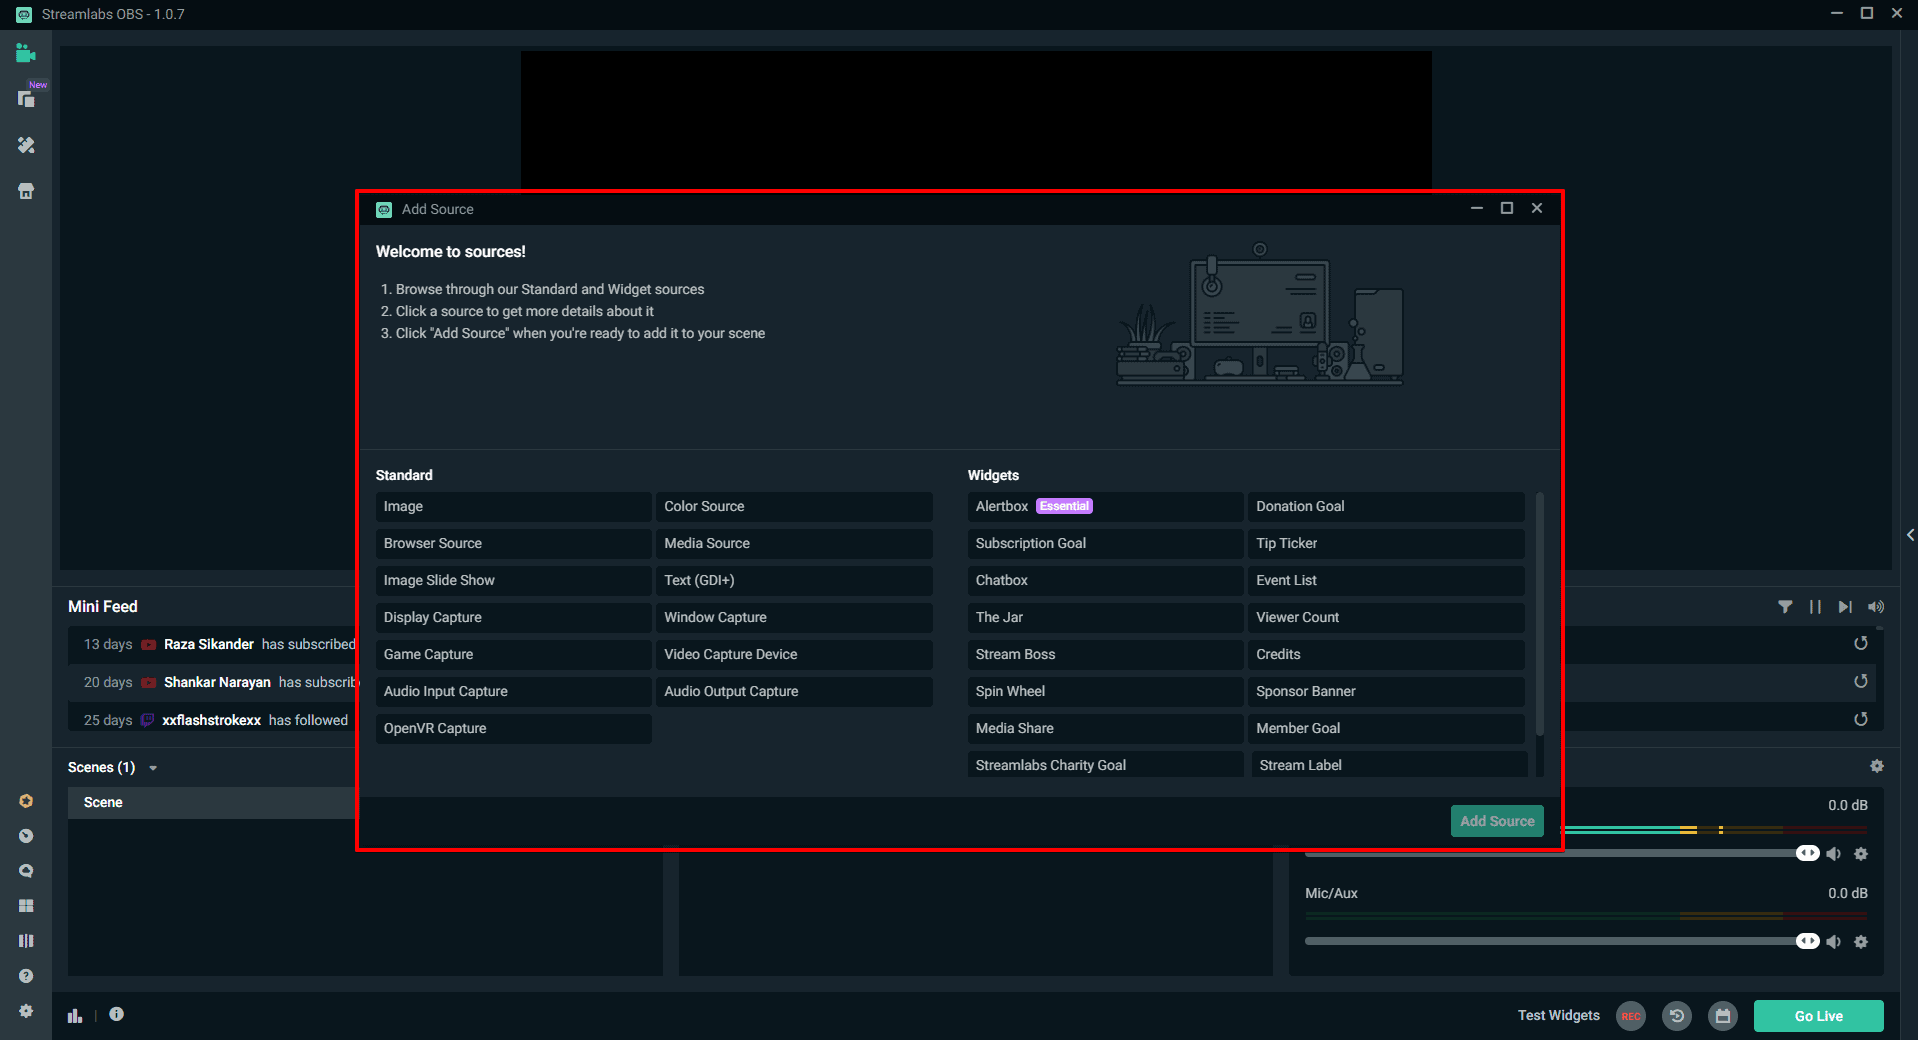 Streamlabs OBS Add Source